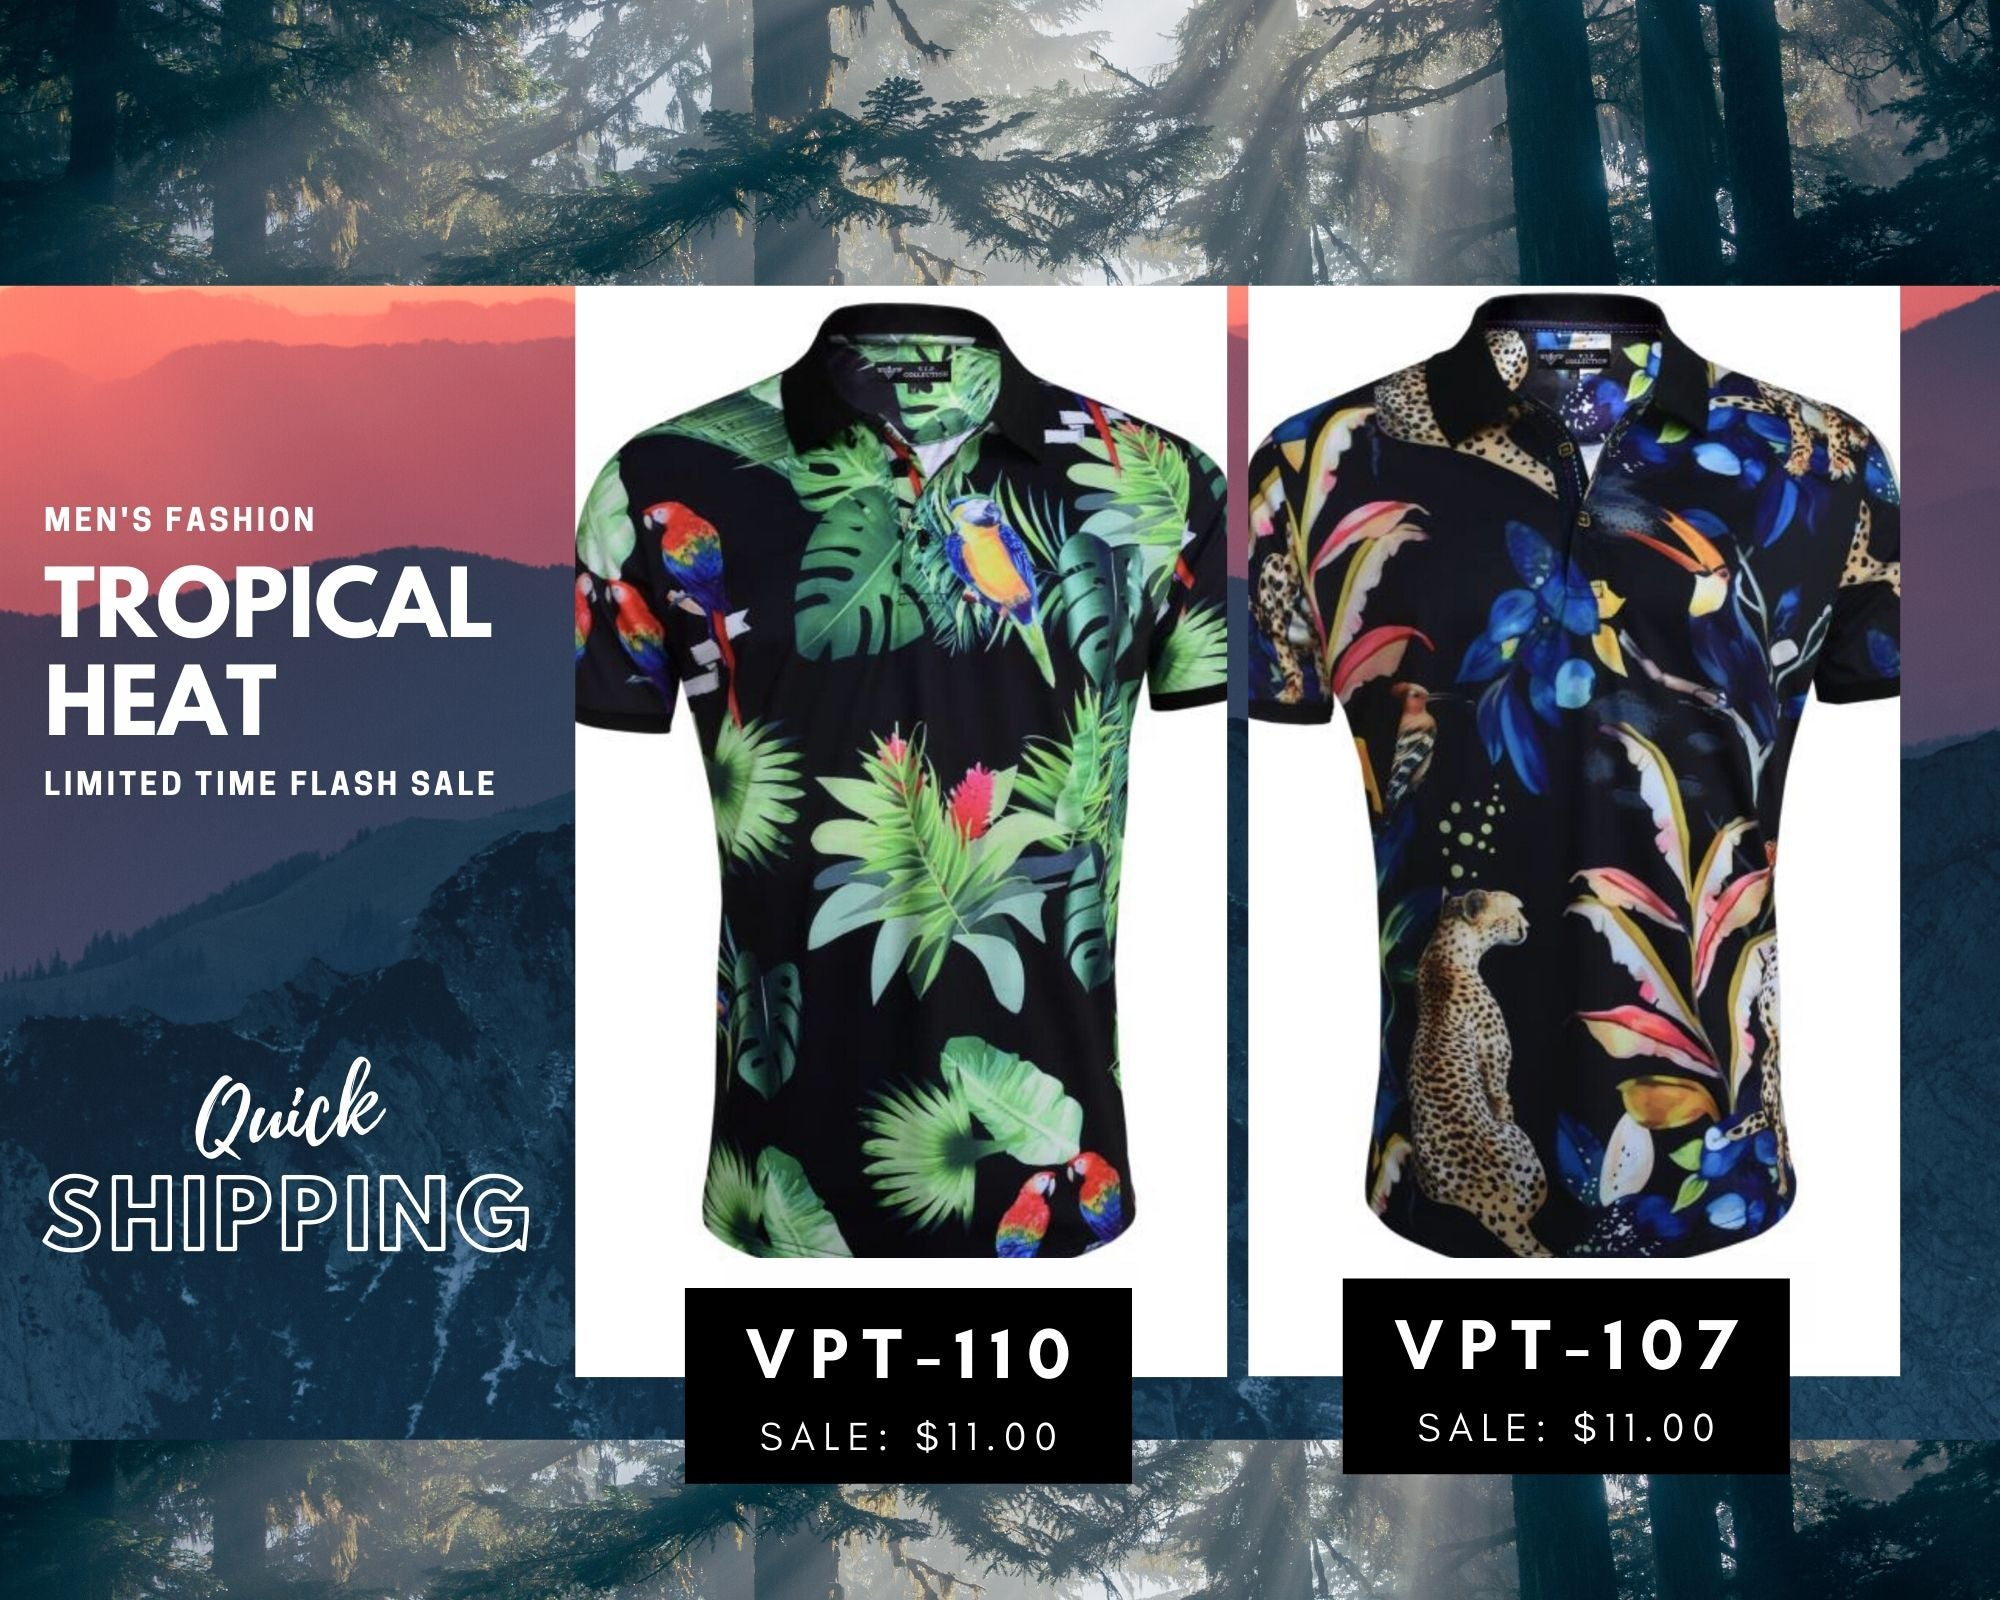 URBAN FITZ INC VPT PROMOTION FOR $11